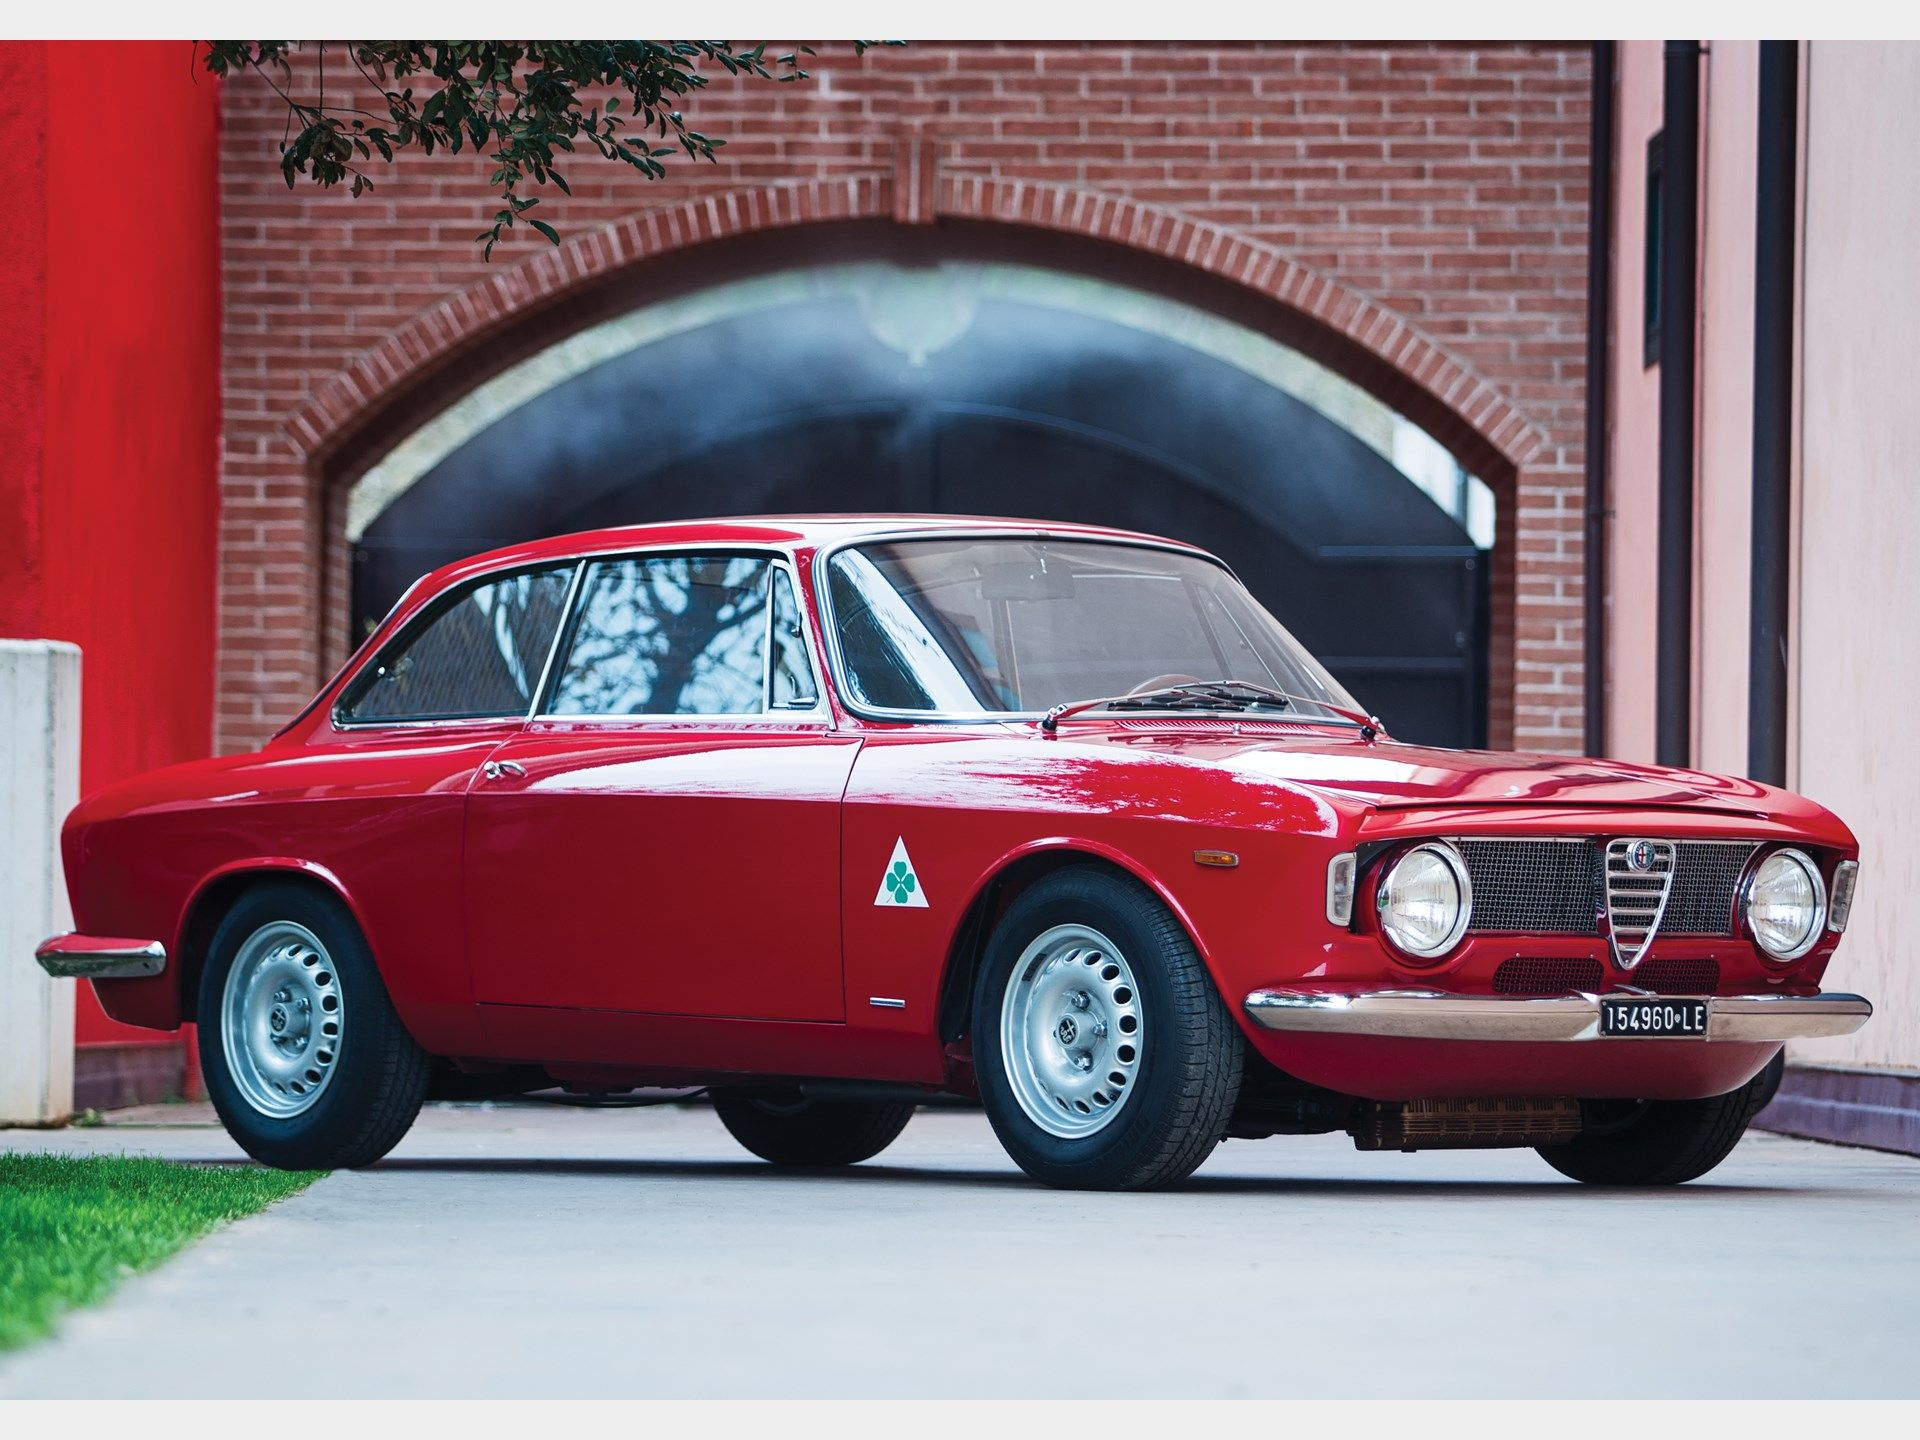 The Gta Gave Alfa Romeo Massive Success In International Touring